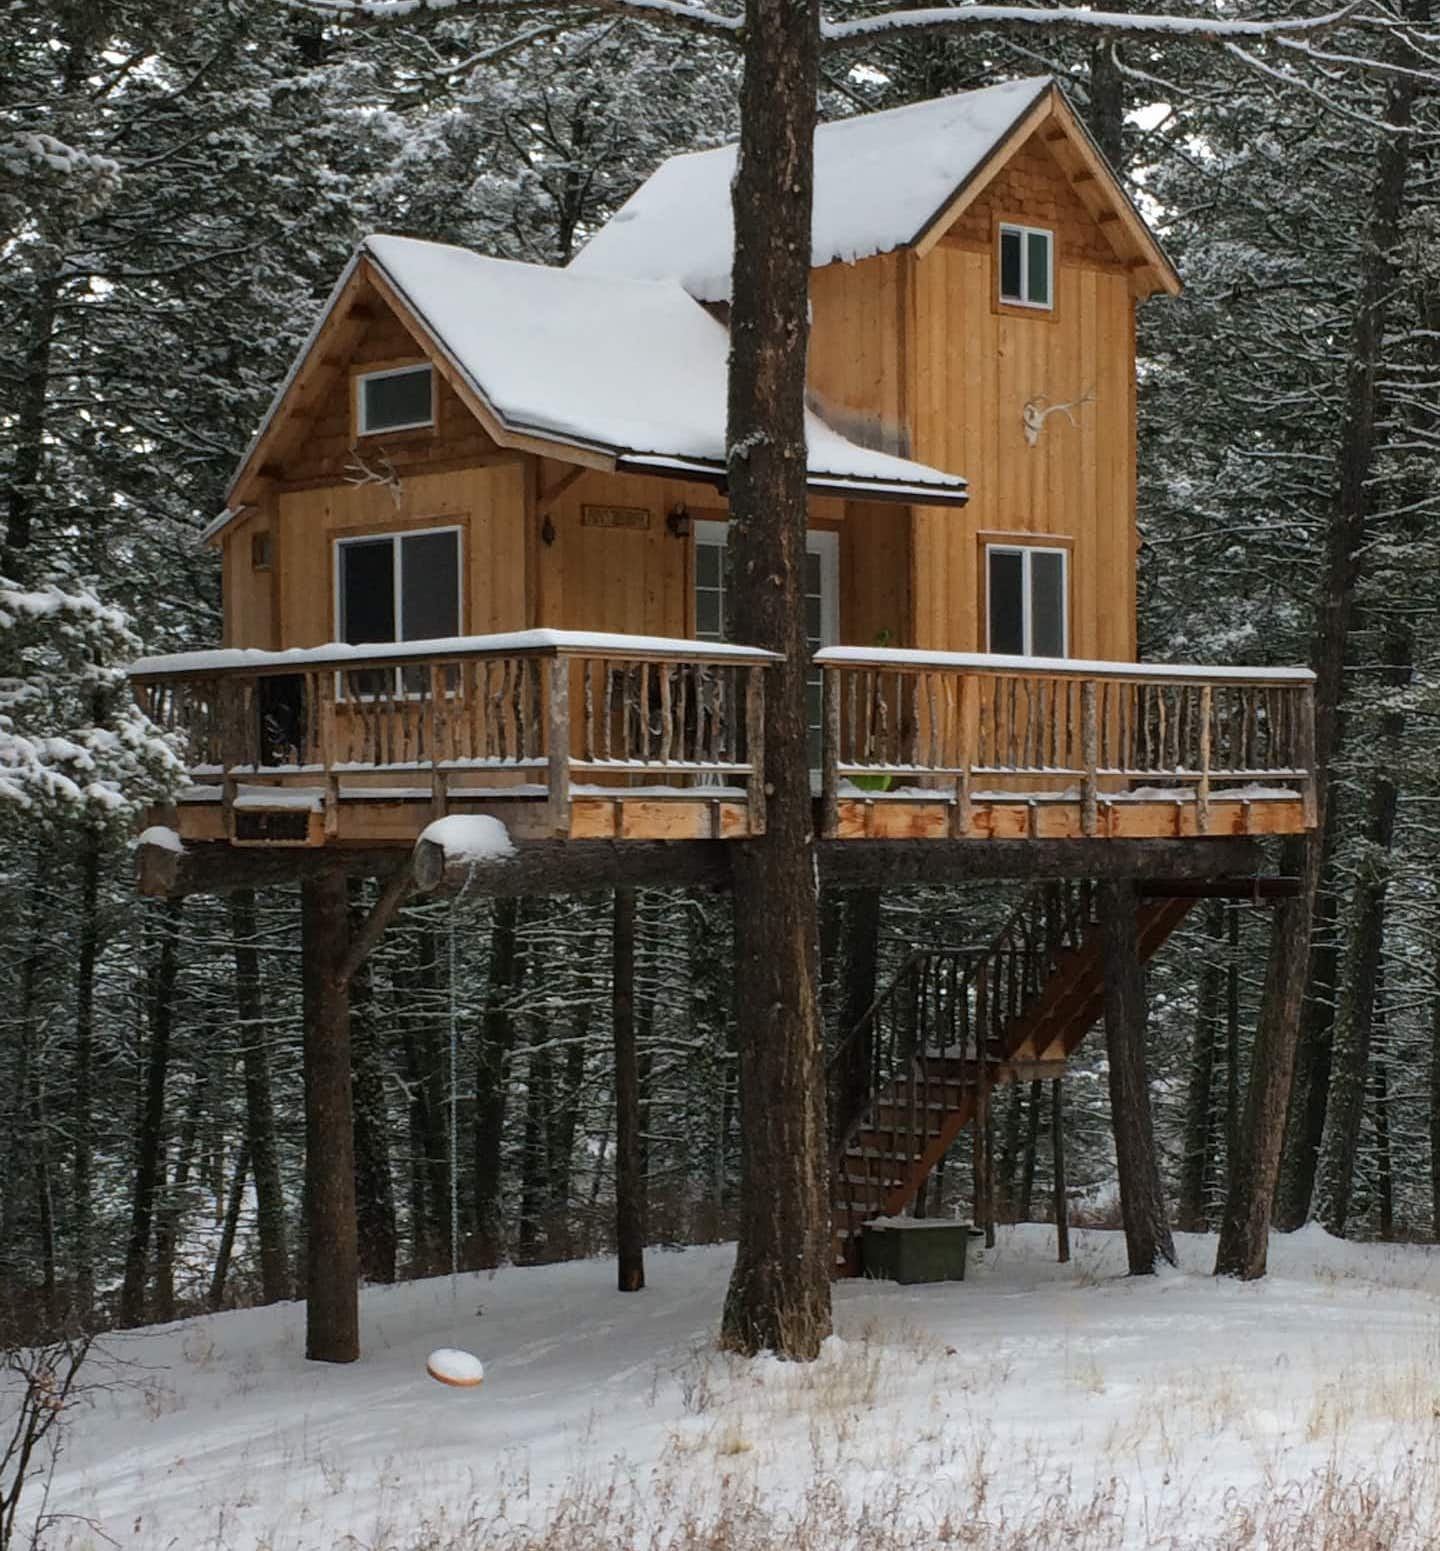 montana airbnb treehouse in winter